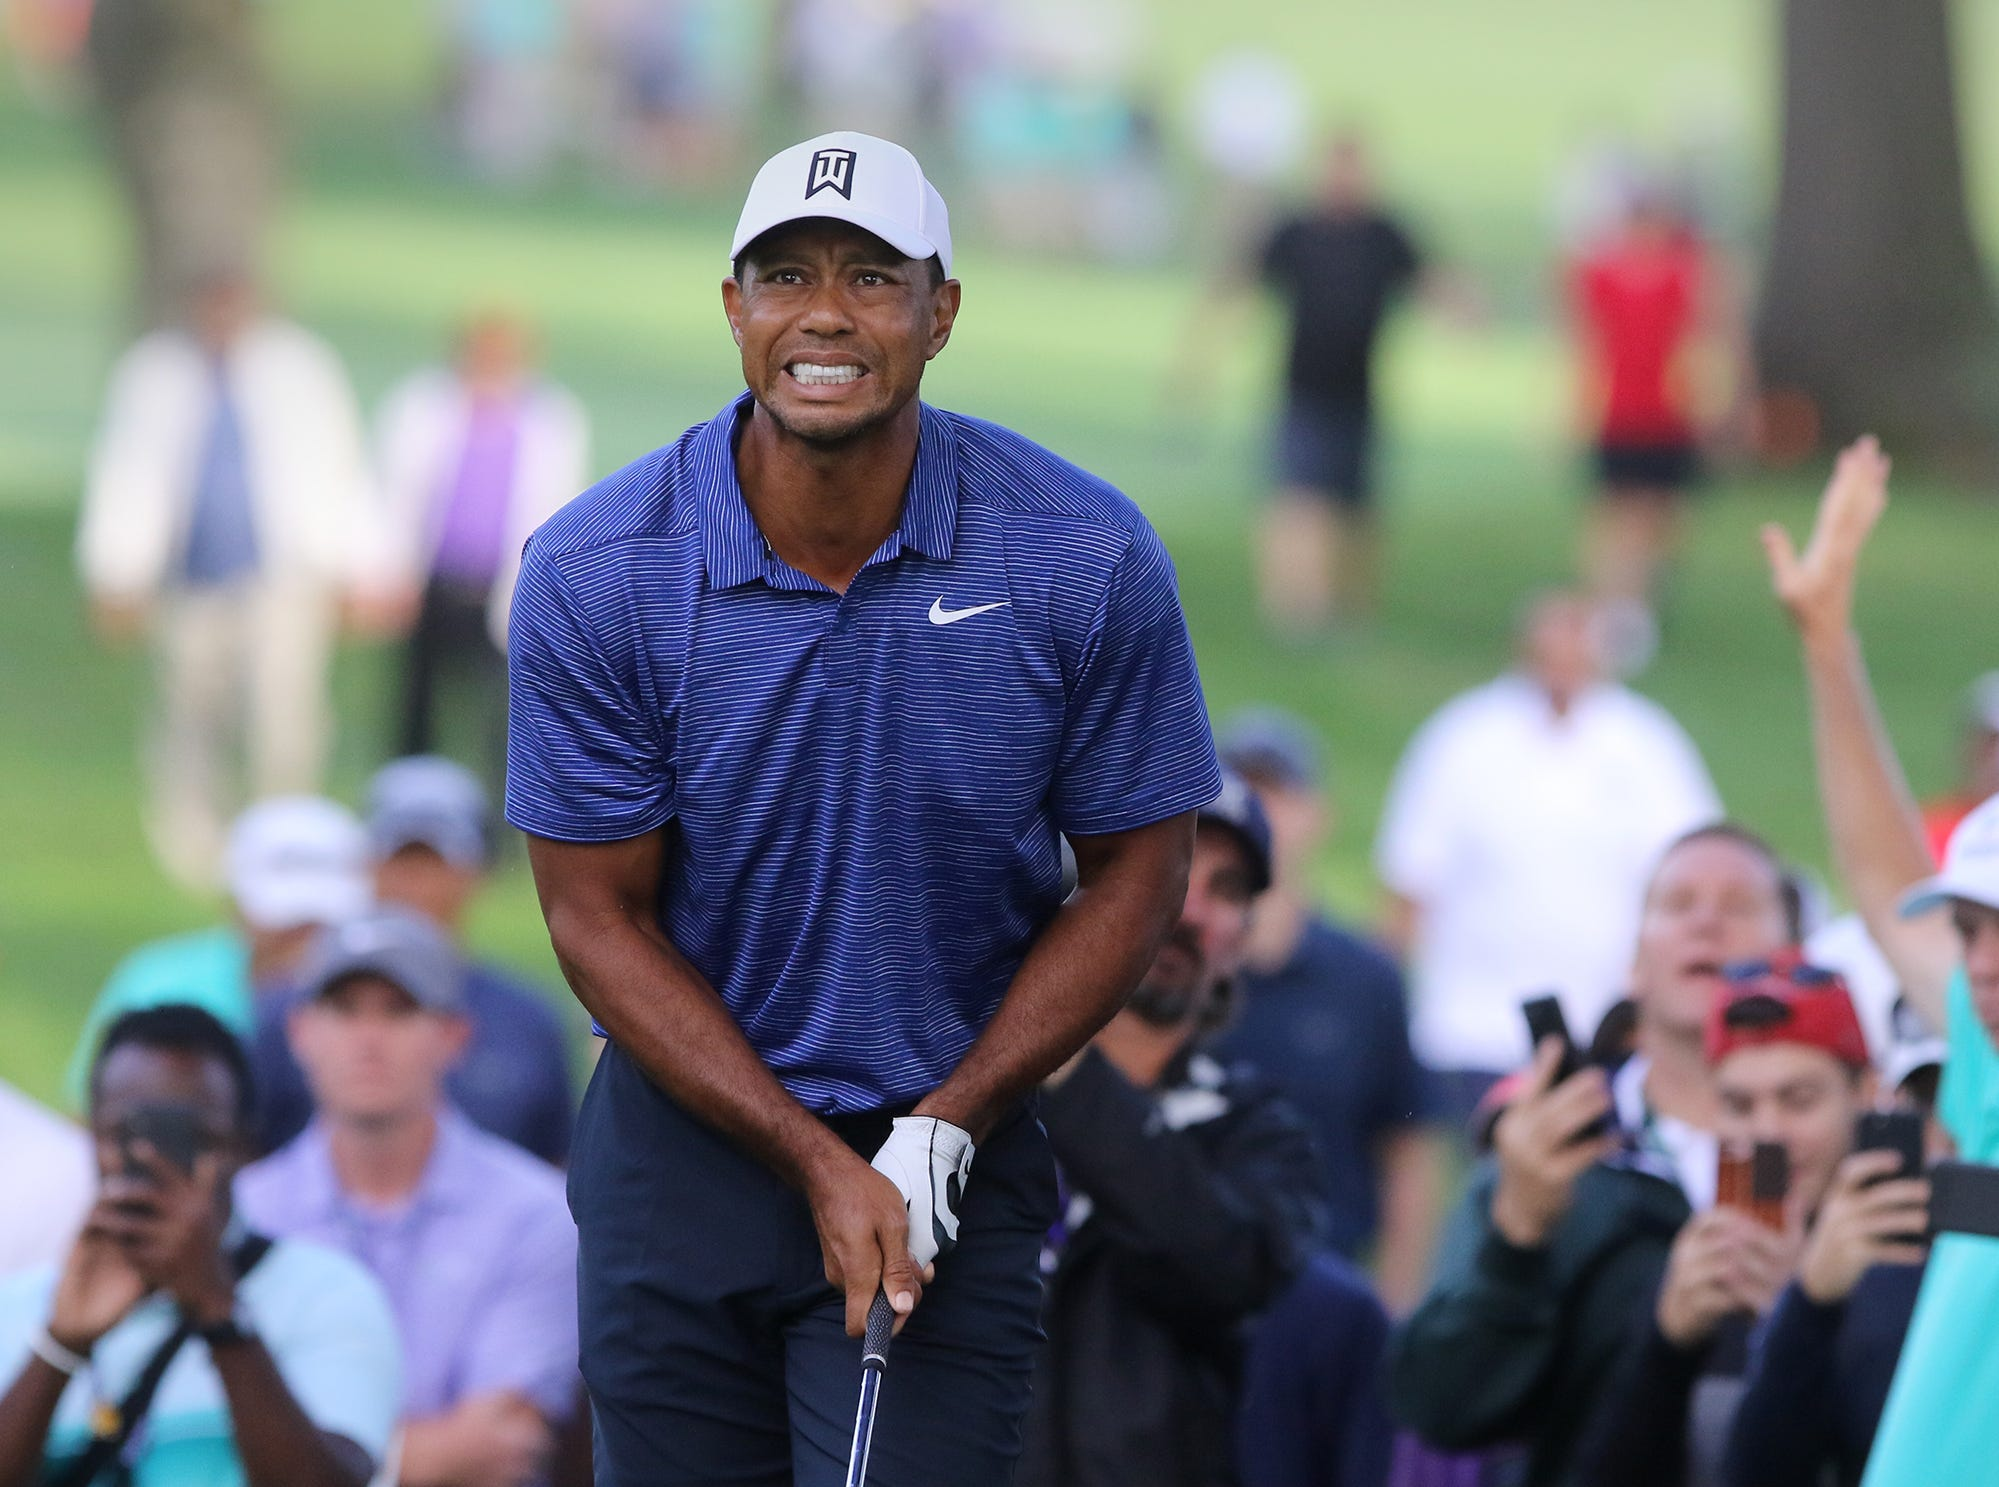 Tiger Woods watches his ball after hitting it out of the rough on the 10th hole to start his first round of the Northern Trust PGA at the Ridgewood Country Club in Paramus, NJ.Pedota POY 2018